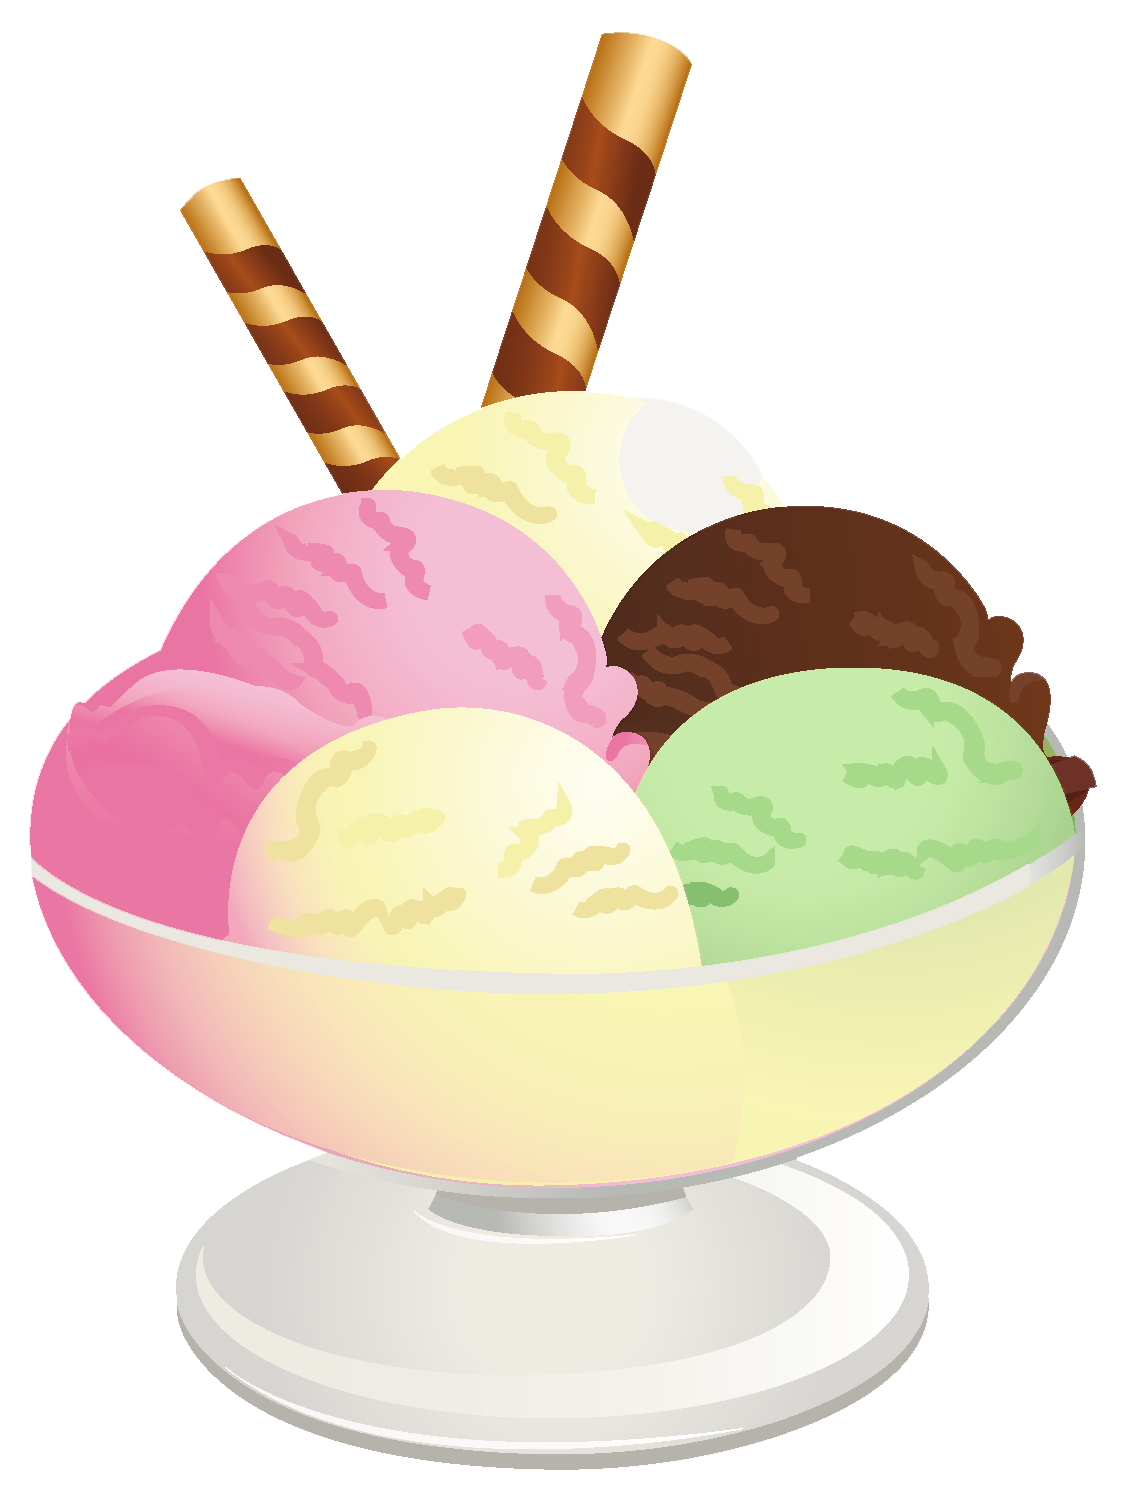 Sundae clipart. Ice cream png picture